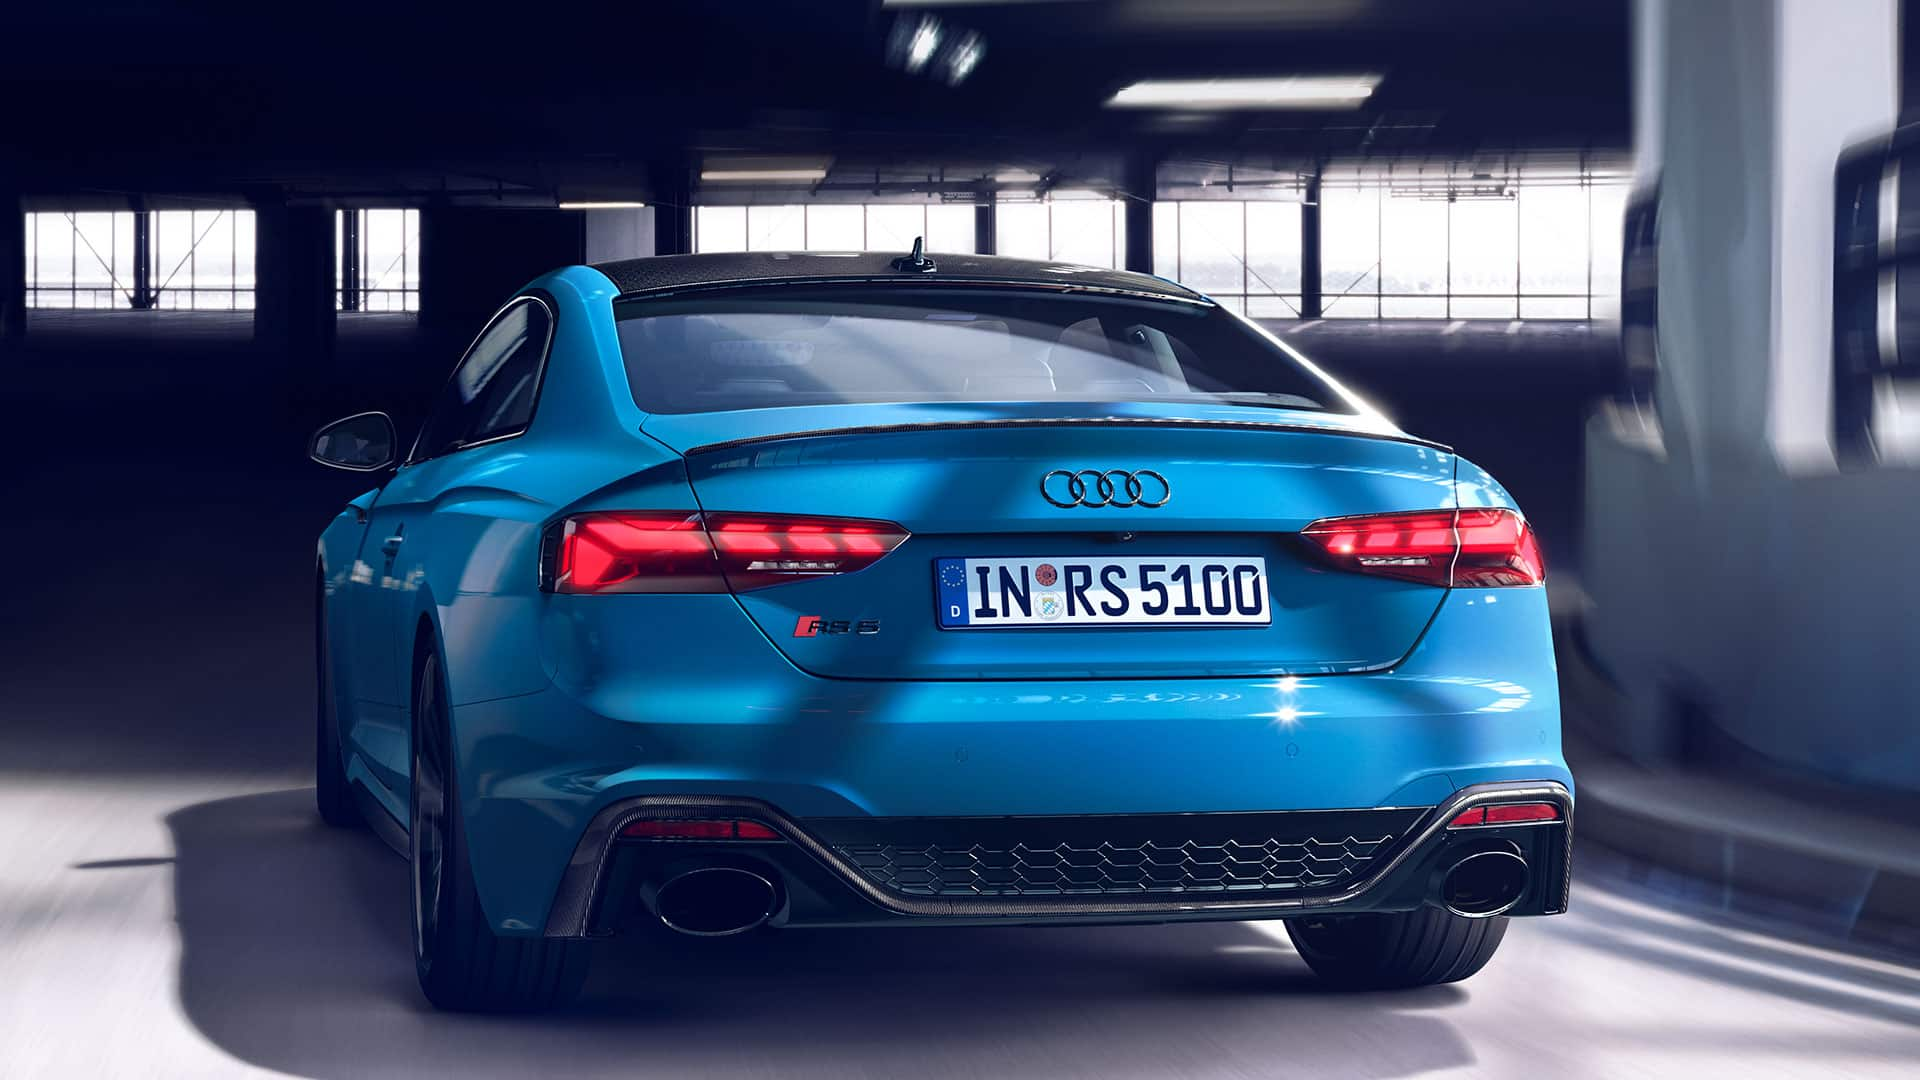 Vista posteriore dell'Audi RS 5 Coupé